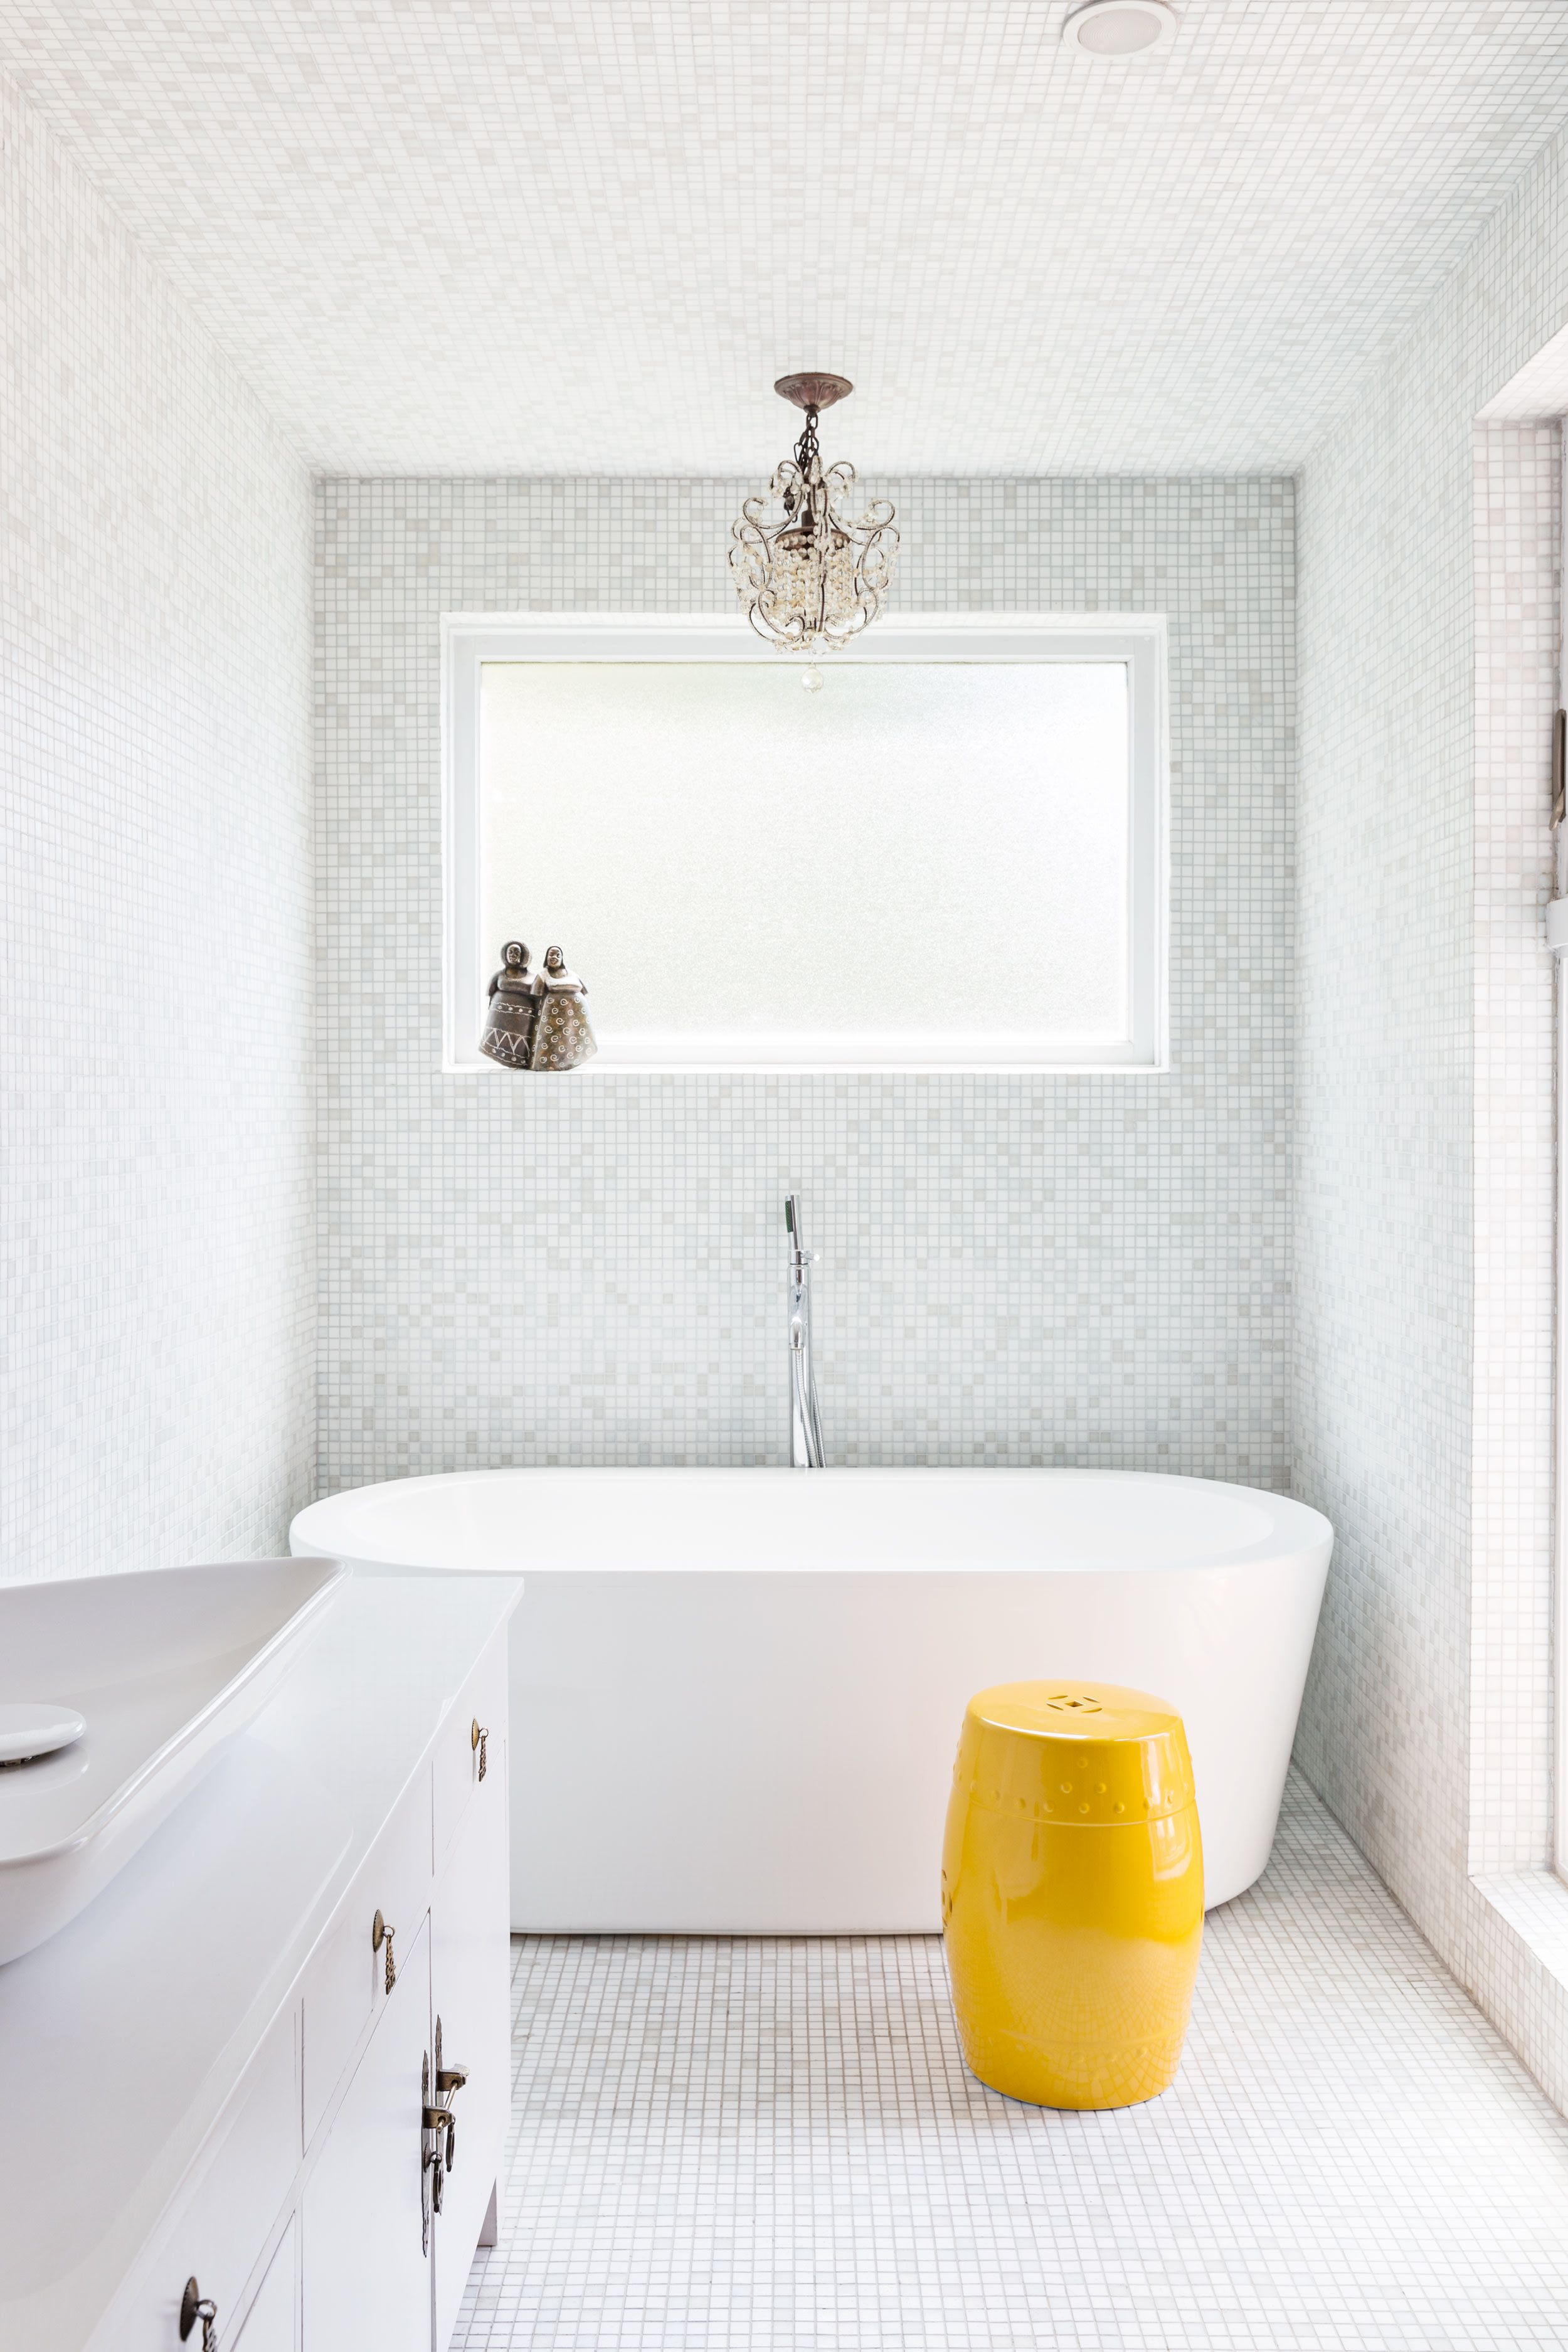 Chic Bathroom Ideas To Redesign Your Space Bathroom Design Bathroom Decor Chic Bathrooms